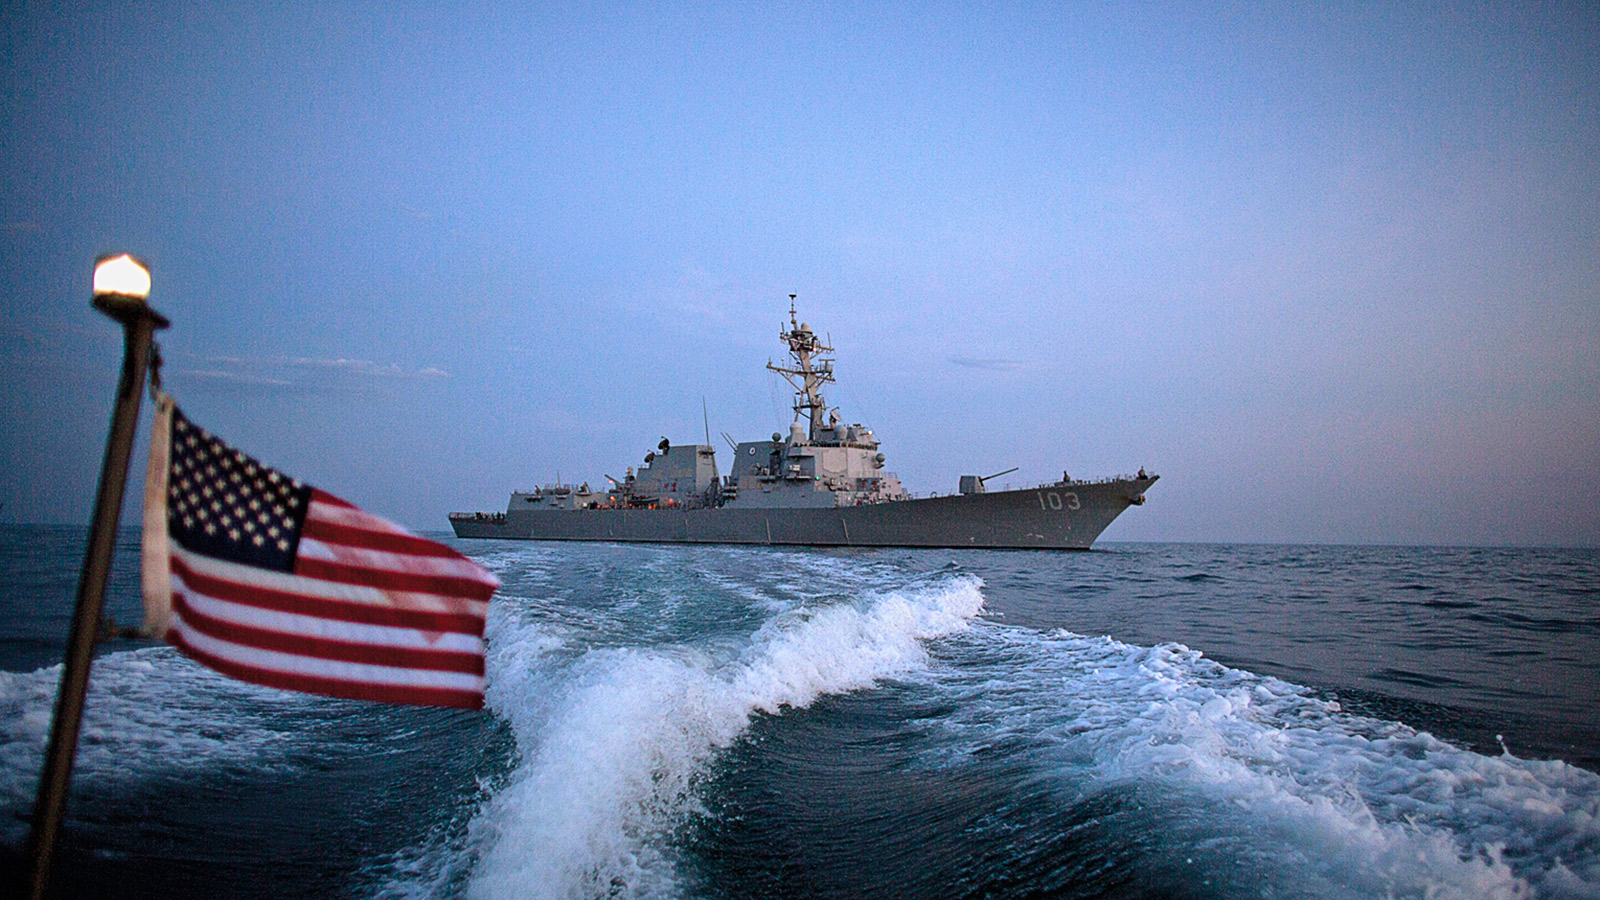 The U.S. Navy guided-missile destroyer USS Truxtun is seen in the Black Sea